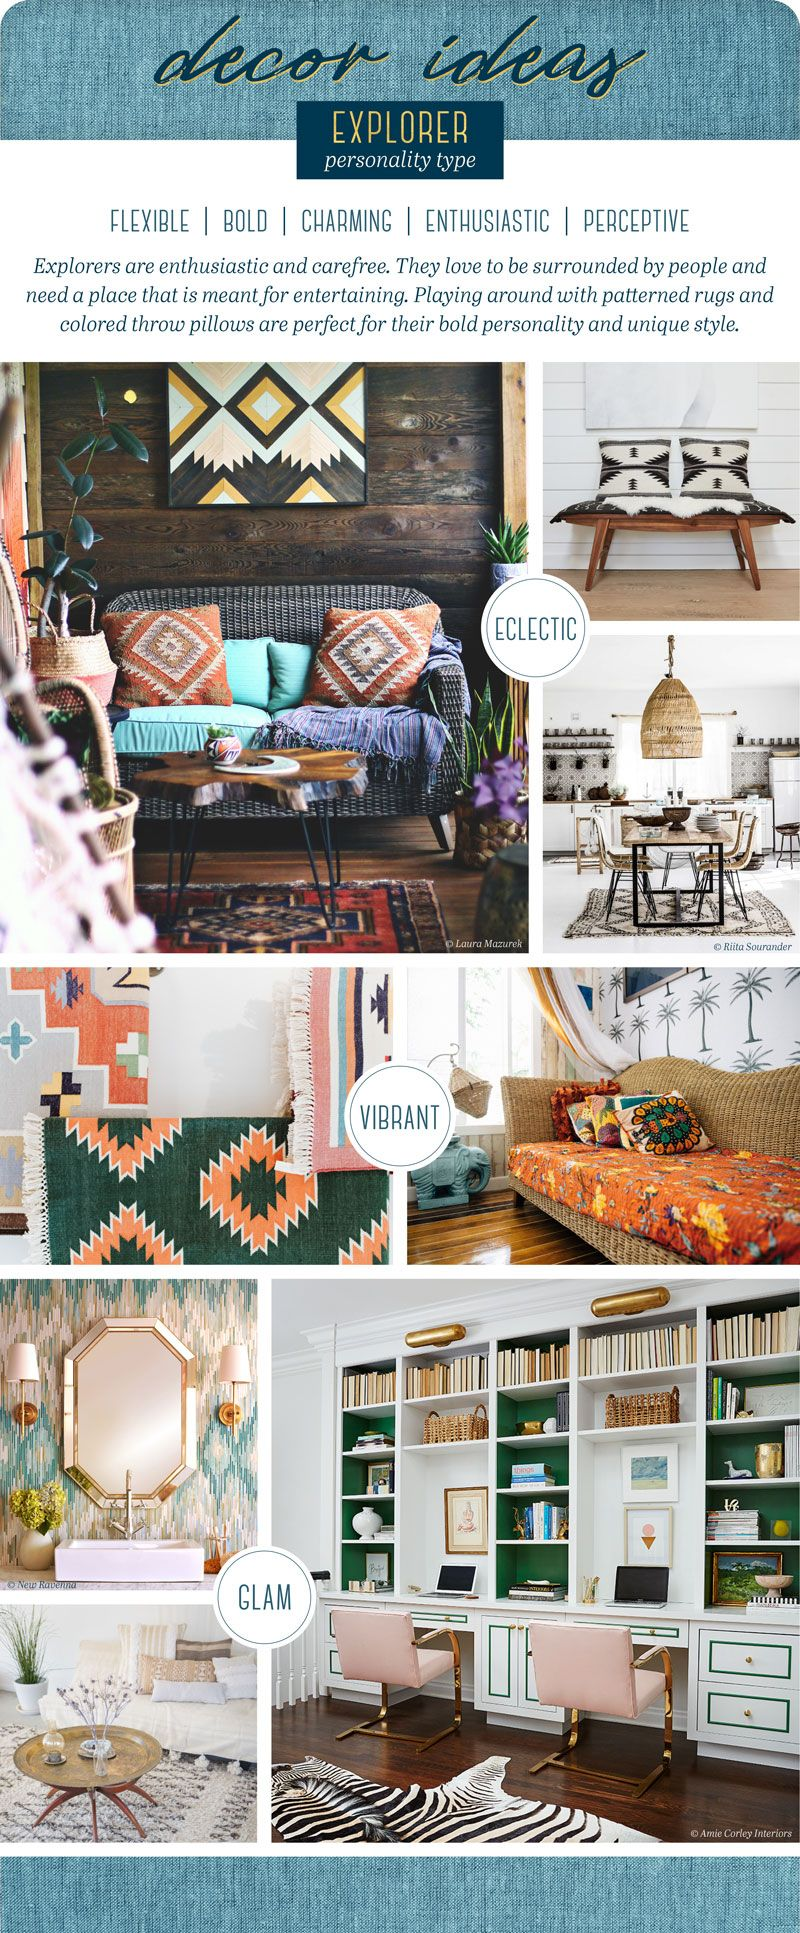 Decorating Ideas For Different Personality Types Home Decor